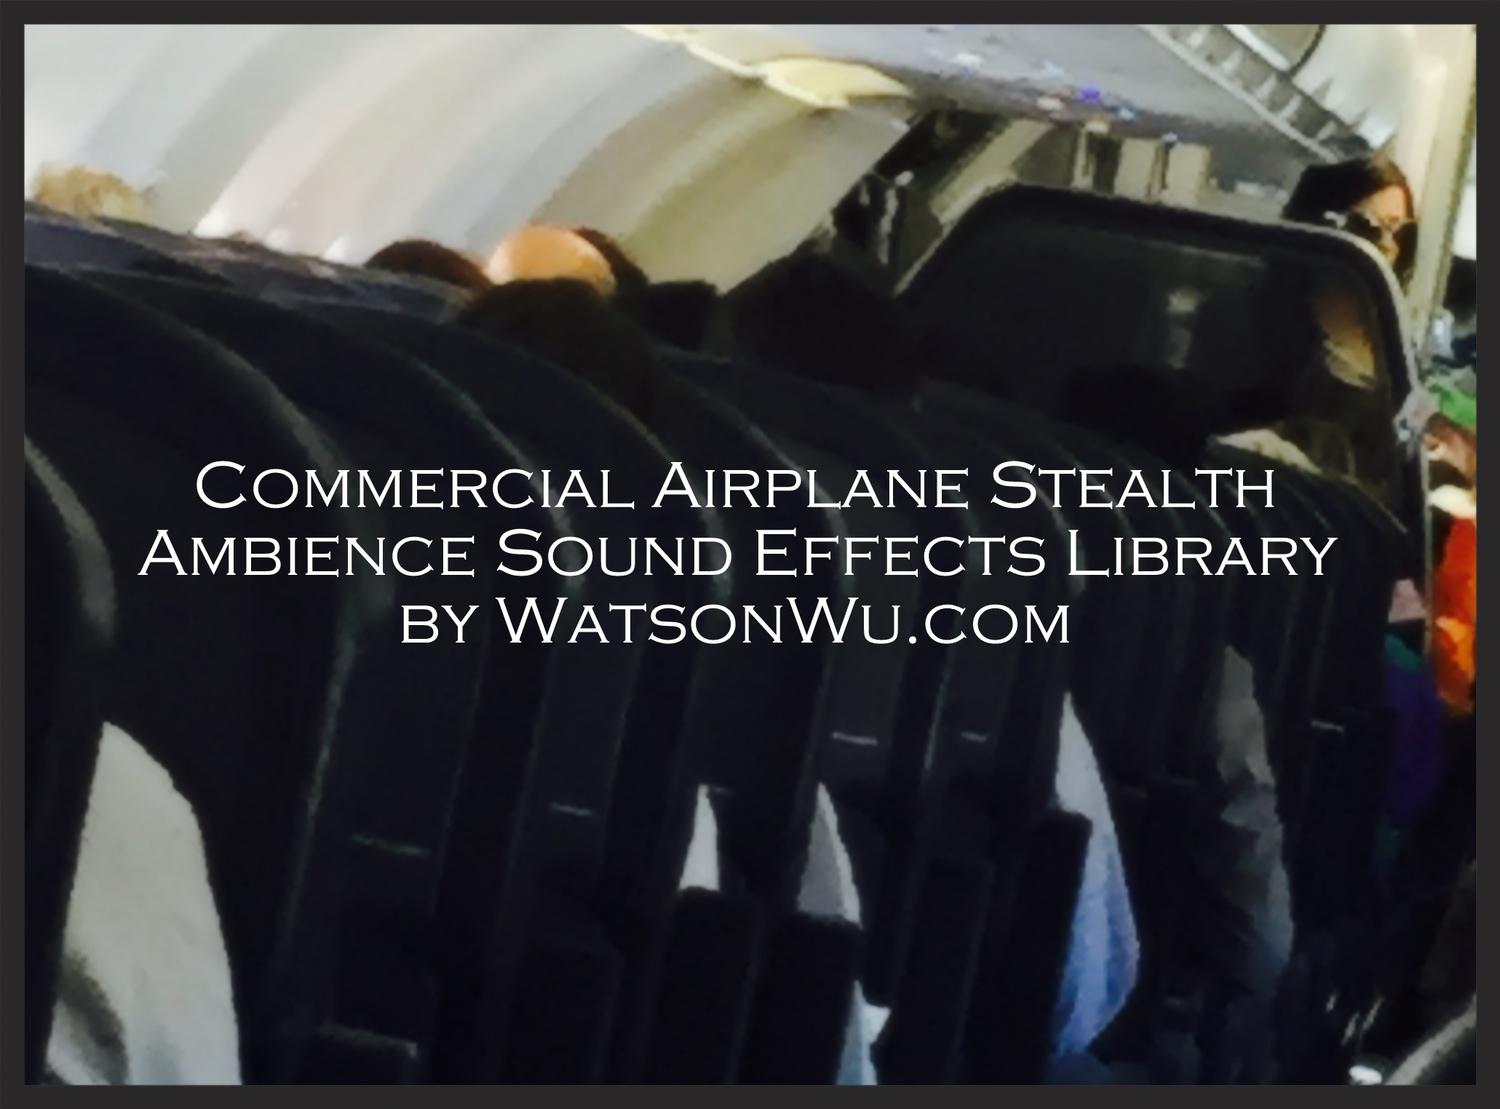 Watson Wu - SFX Lbrary - Ambience - AirBus 319 & AirBus 320 commercial jets.jpg